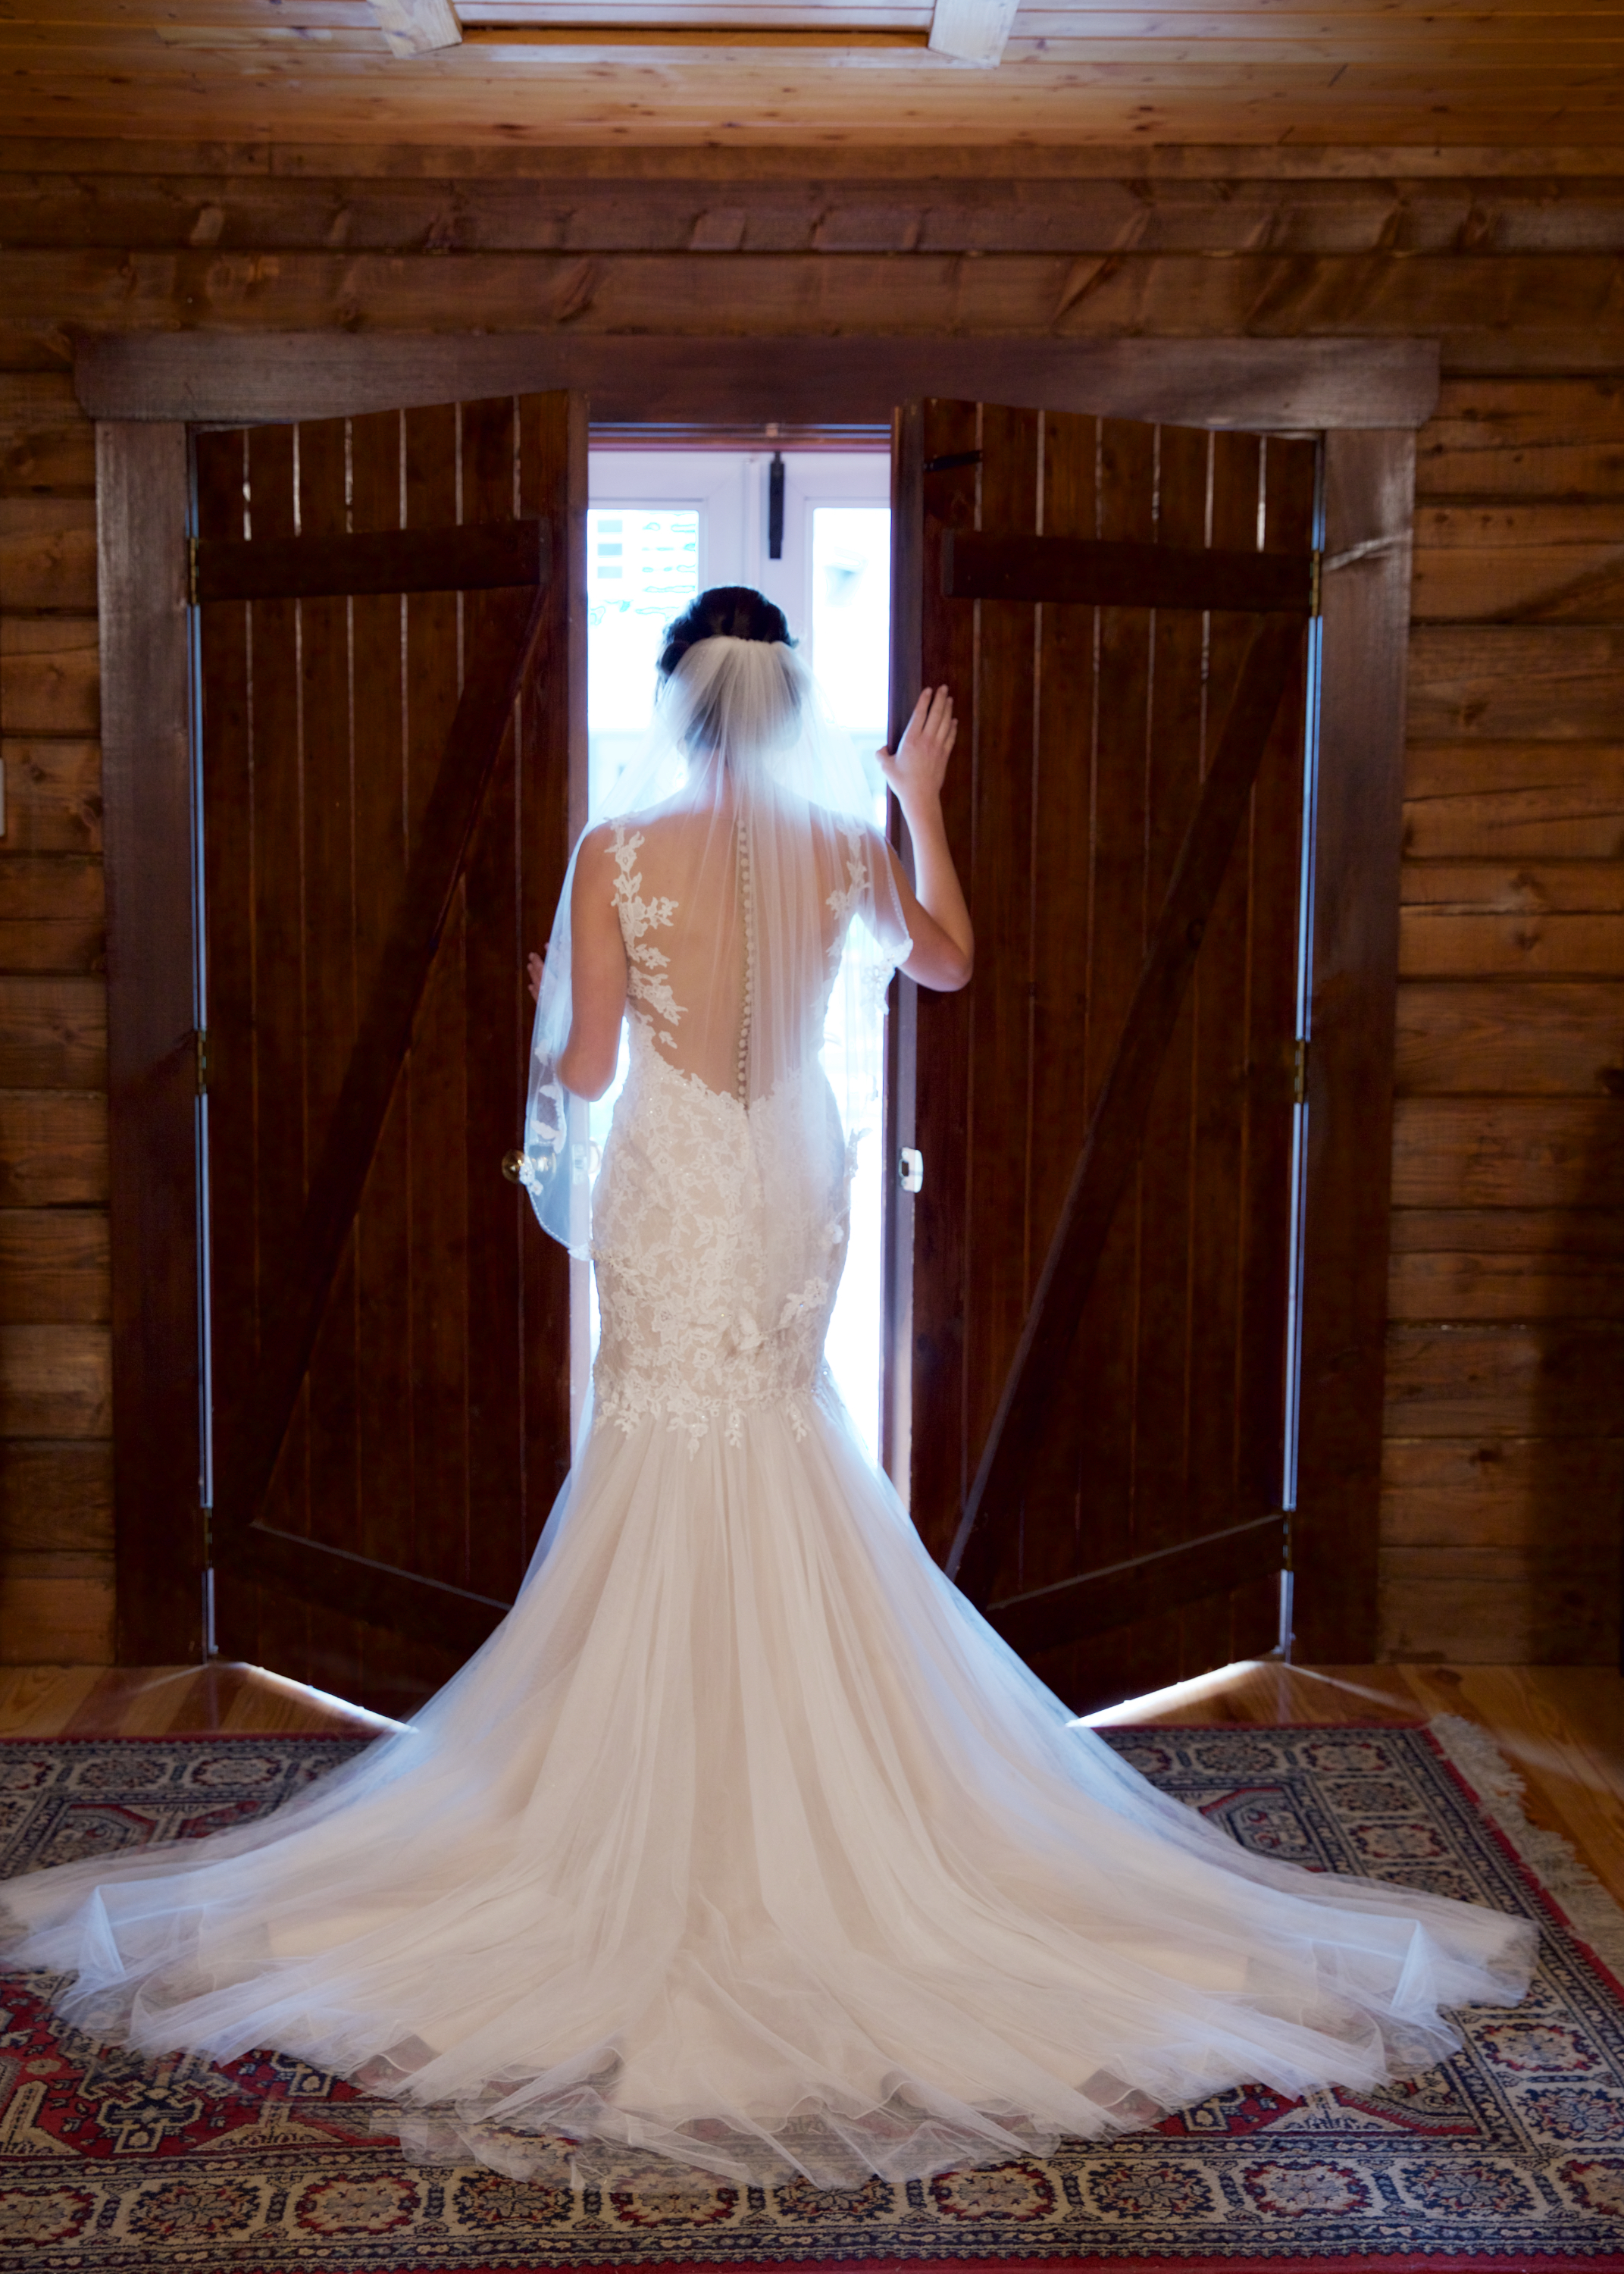 5a-bride-in-doorway.jpg